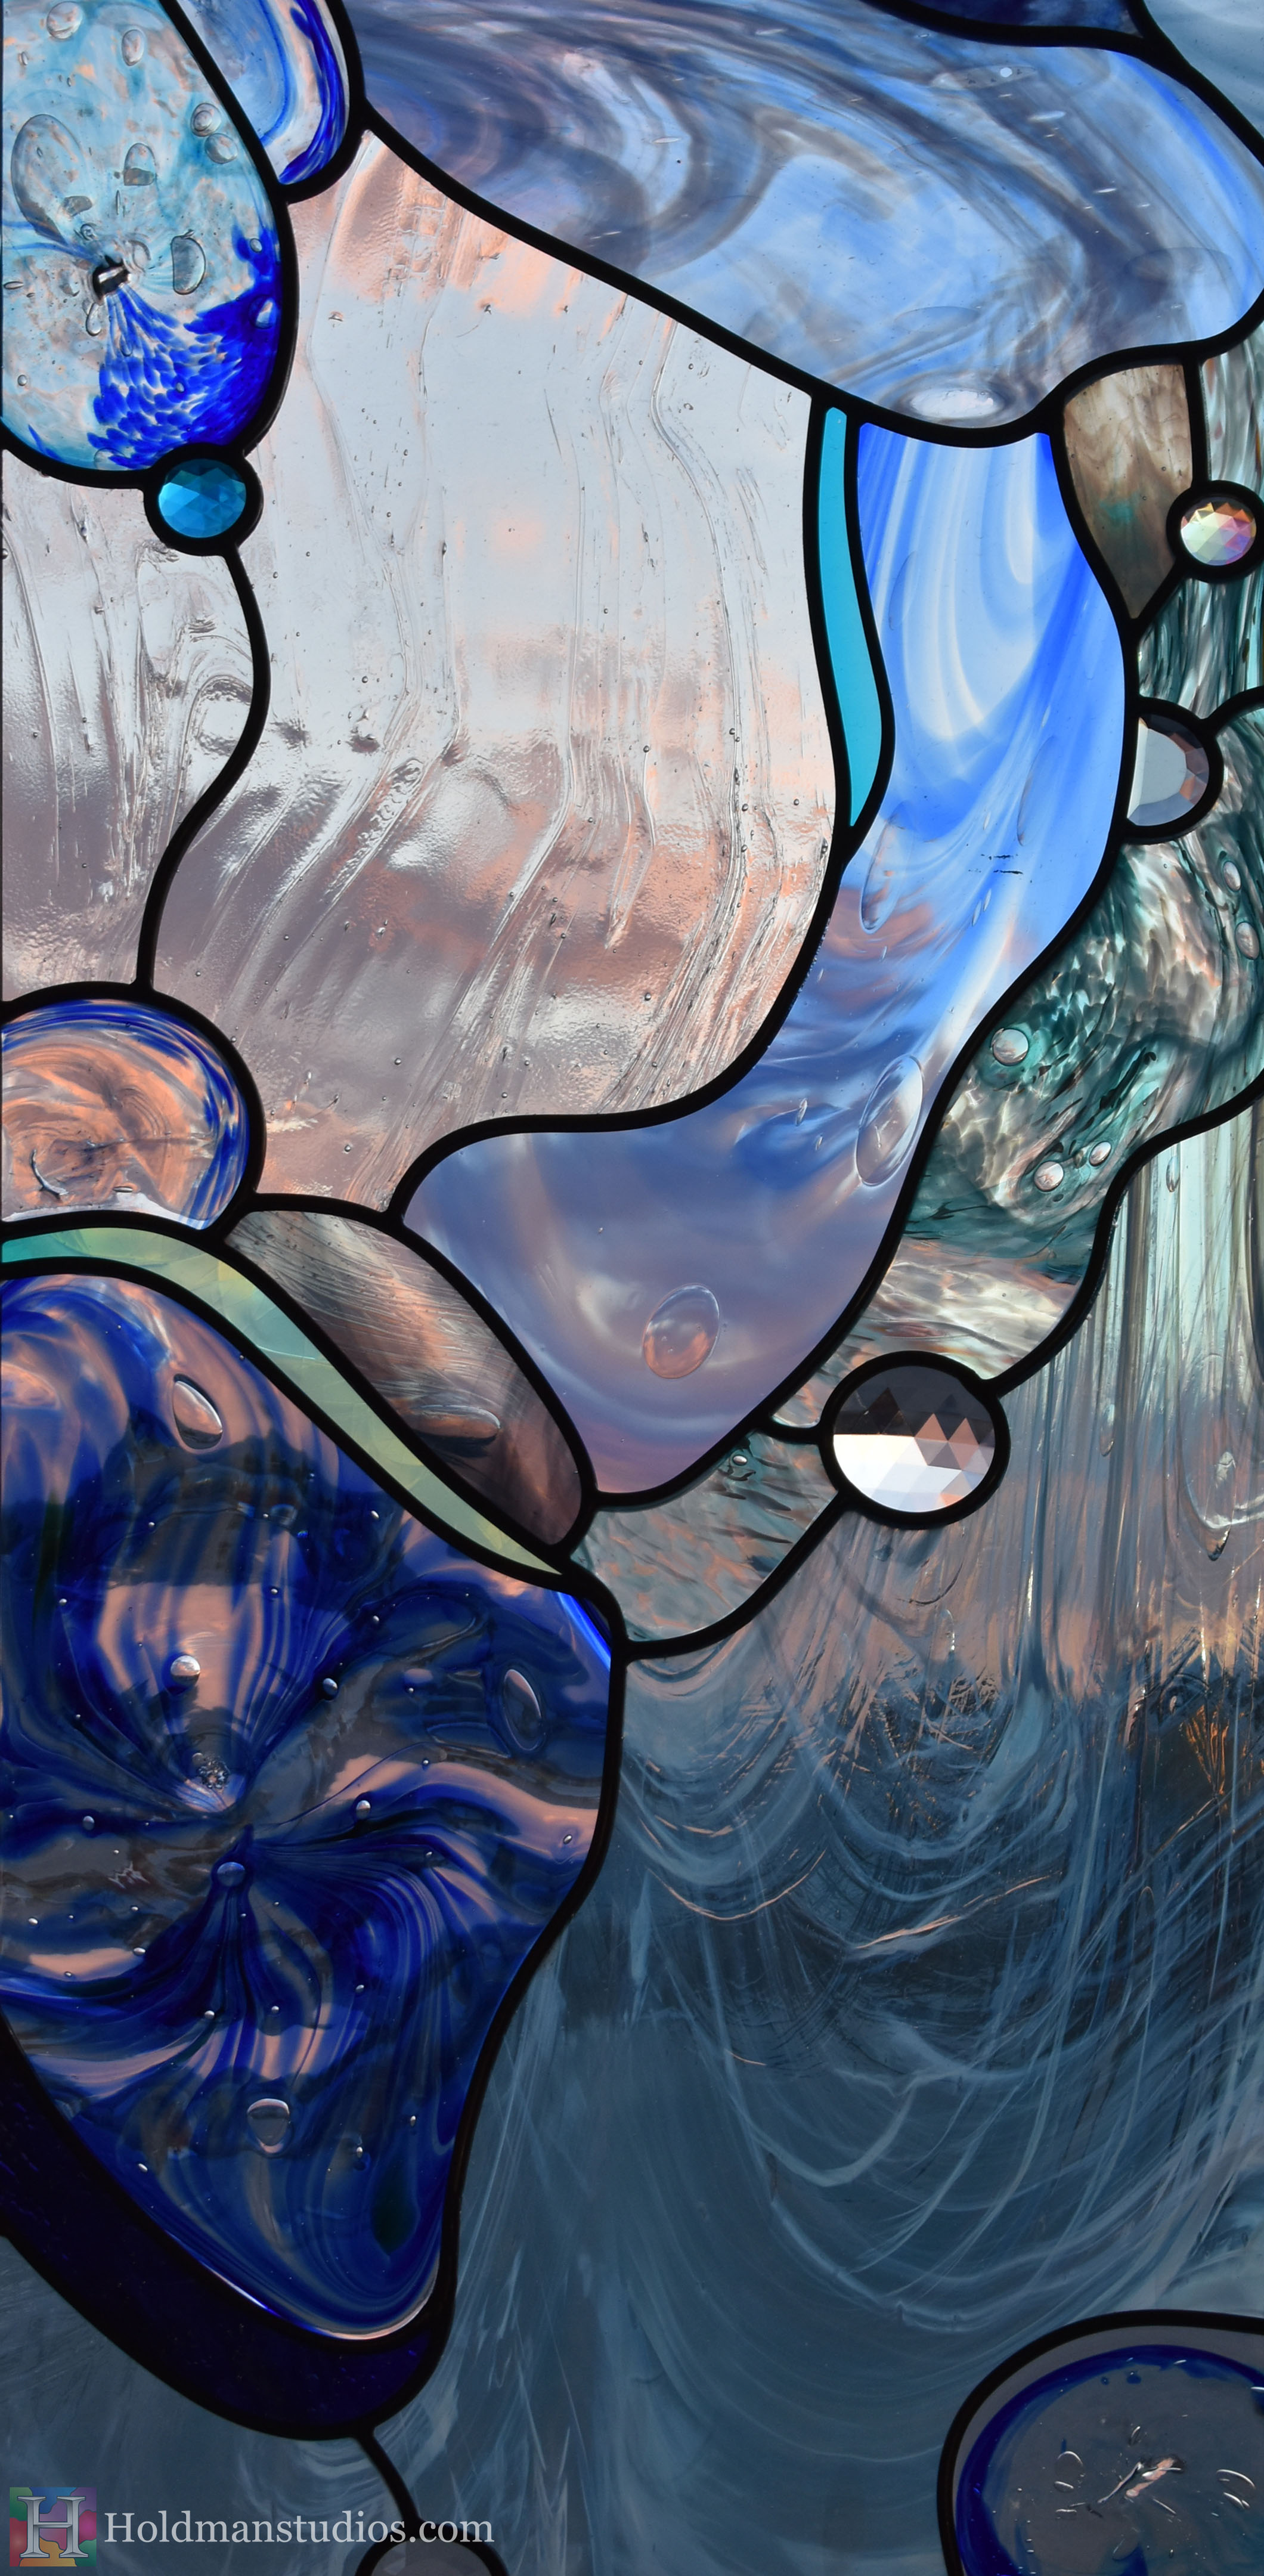 holdman-studios-hand-blown-stained-glass-window-springville-clyde-rec-center-slash-and-wave-cropped3.jpg